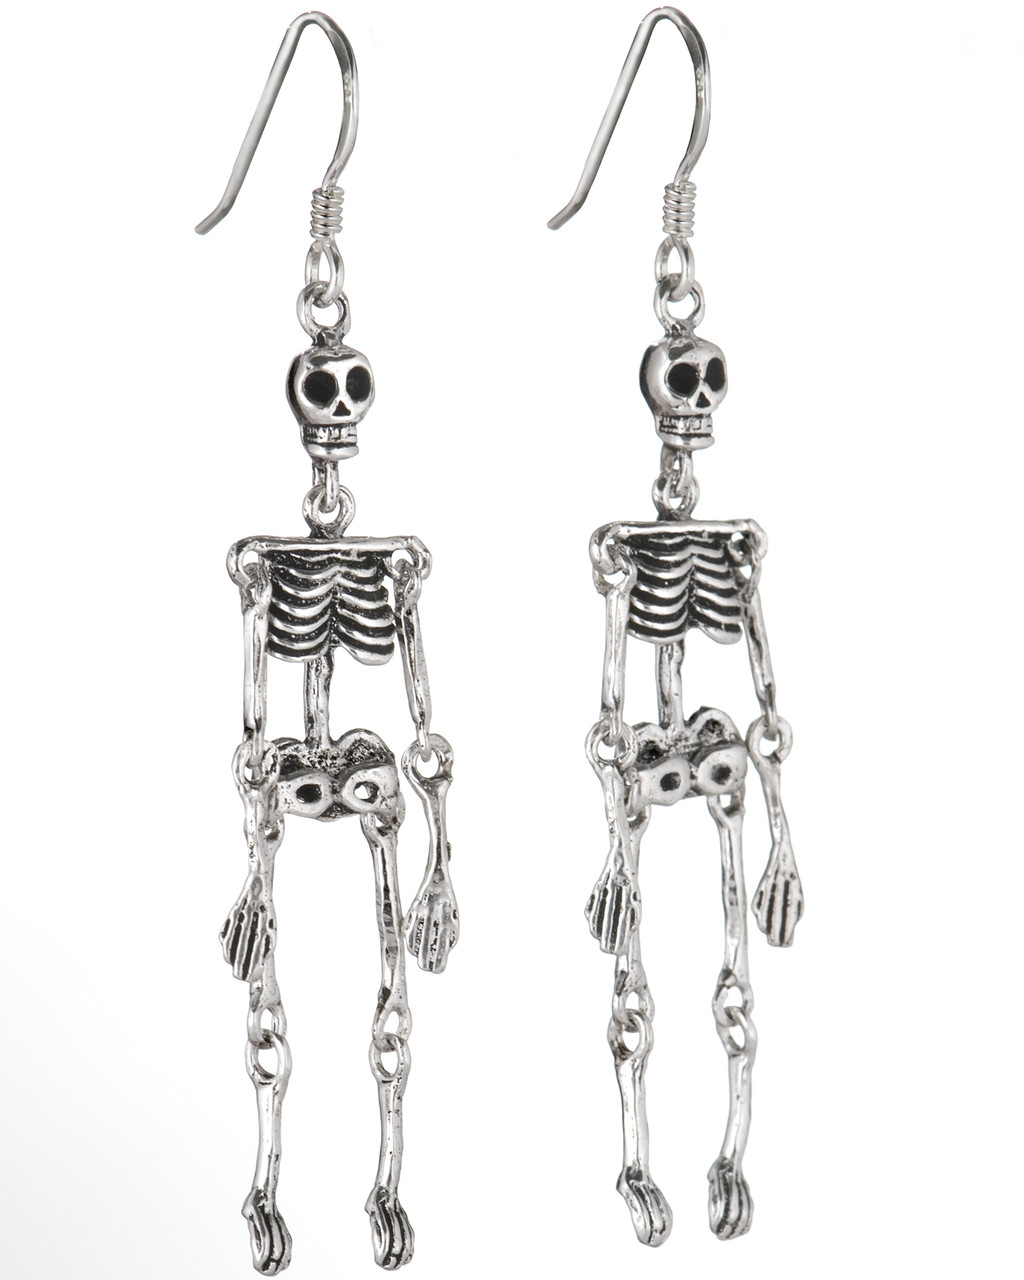 f2dc41aec47cce Skeleton Hanging Earrings - The Evolution Store